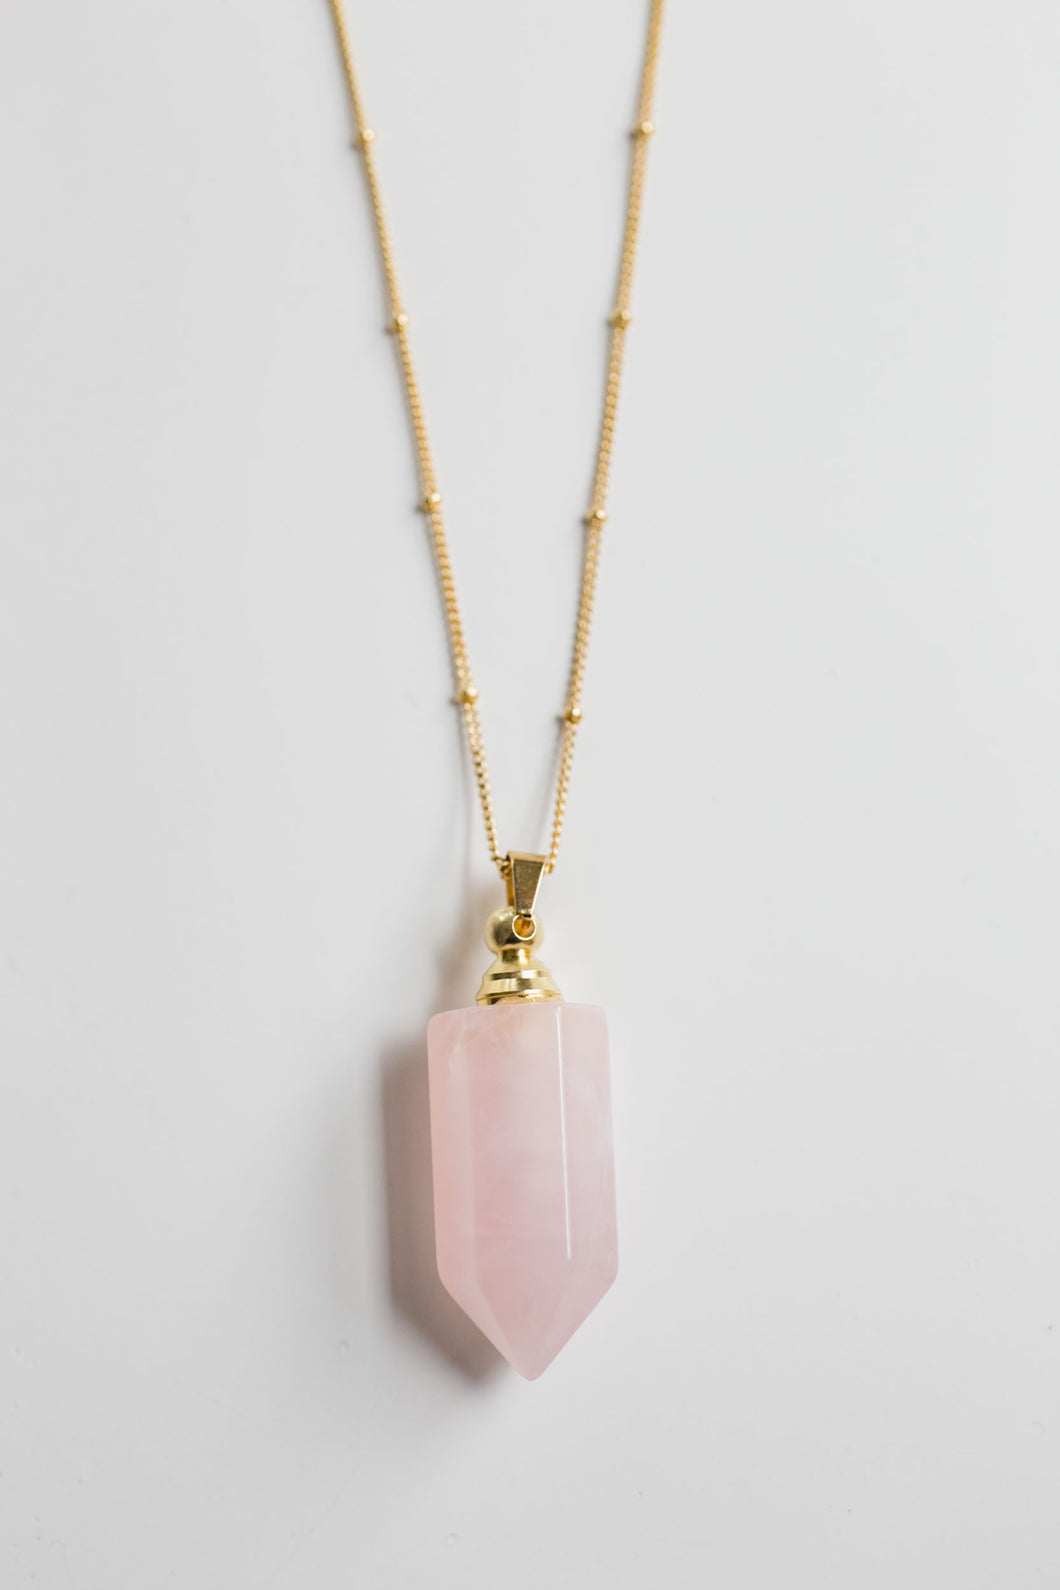 Rose Quartz Gemstone Essential Oil Bottle Necklace